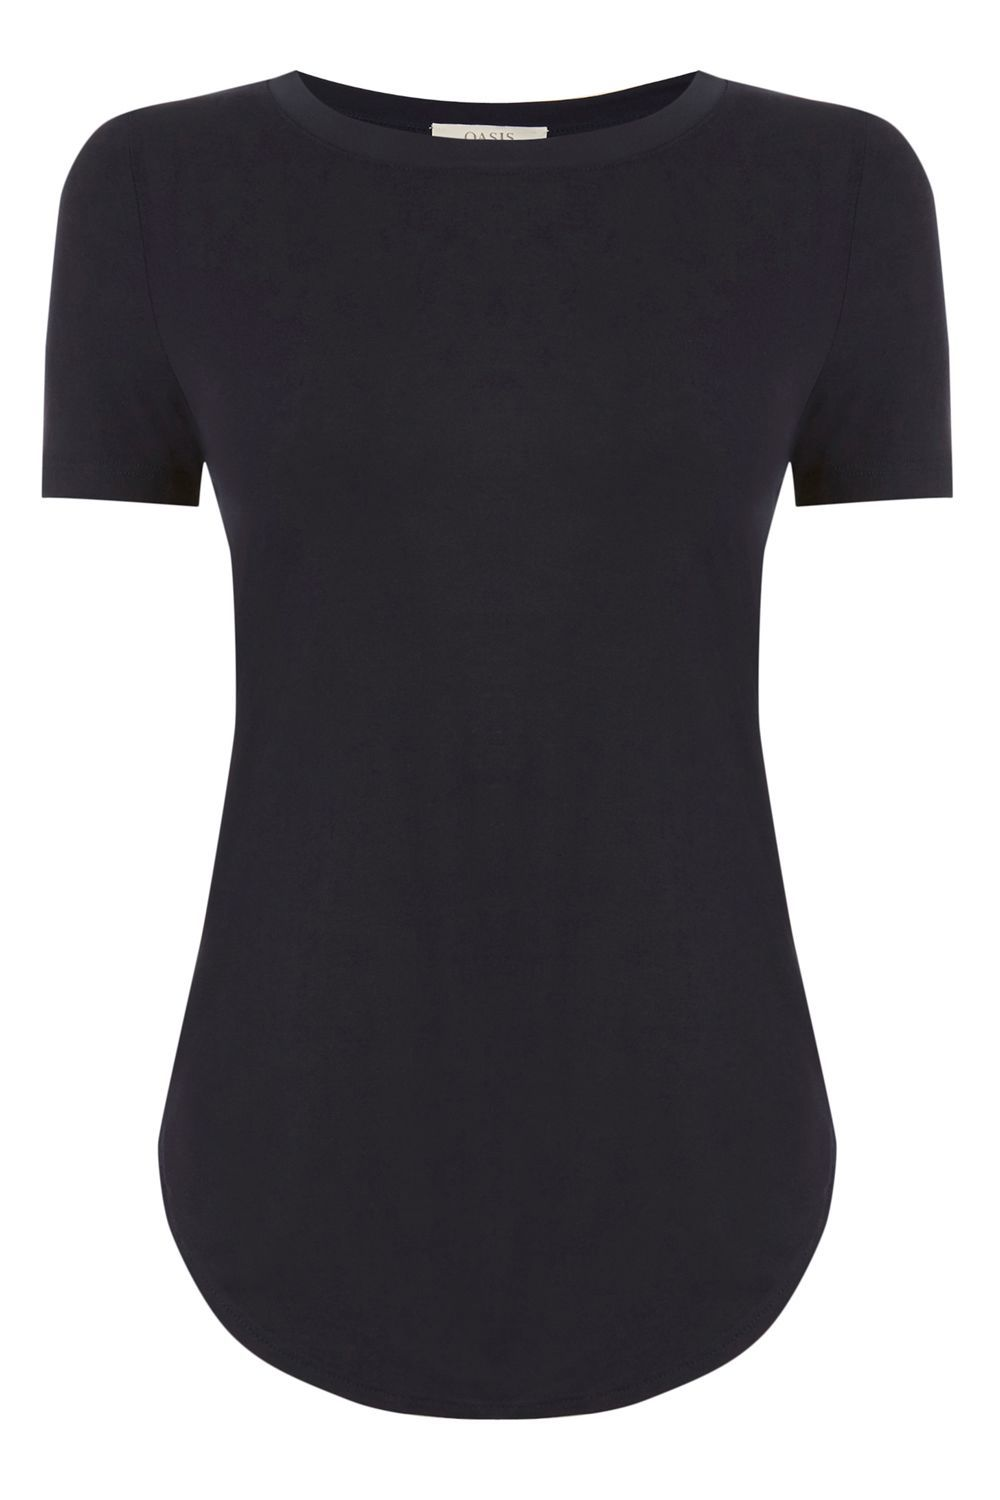 The Percfect Tee, Navy - pattern: plain; length: below the bottom; style: t-shirt; predominant colour: black; occasions: casual; fibres: viscose/rayon - 100%; fit: body skimming; neckline: crew; sleeve length: short sleeve; sleeve style: standard; pattern type: fabric; texture group: jersey - stretchy/drapey; season: s/s 2016; wardrobe: basic